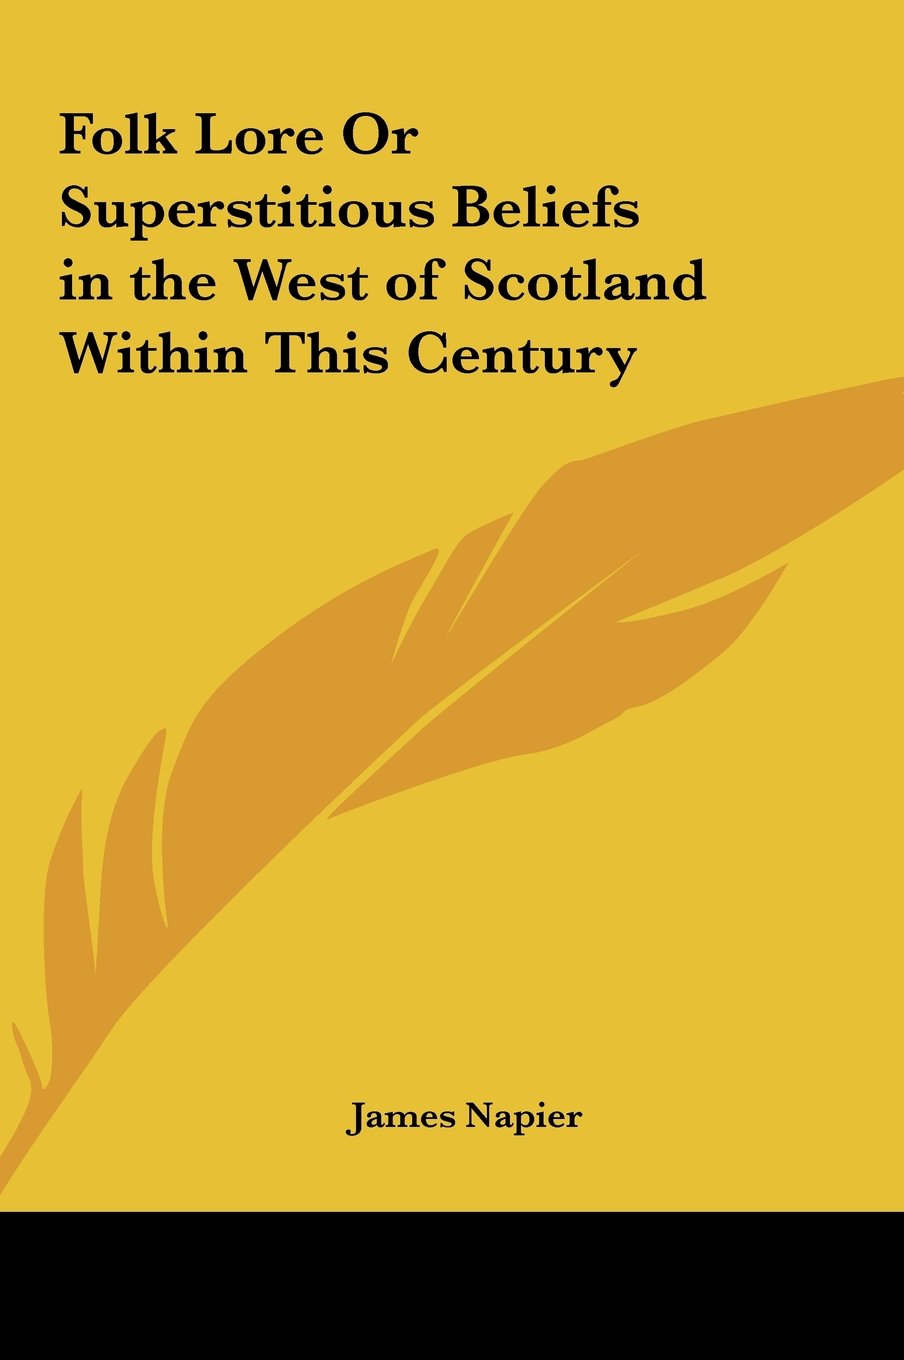 Download Folk Lore or Superstitious Beliefs in the West of Scotland Within This Century PDF